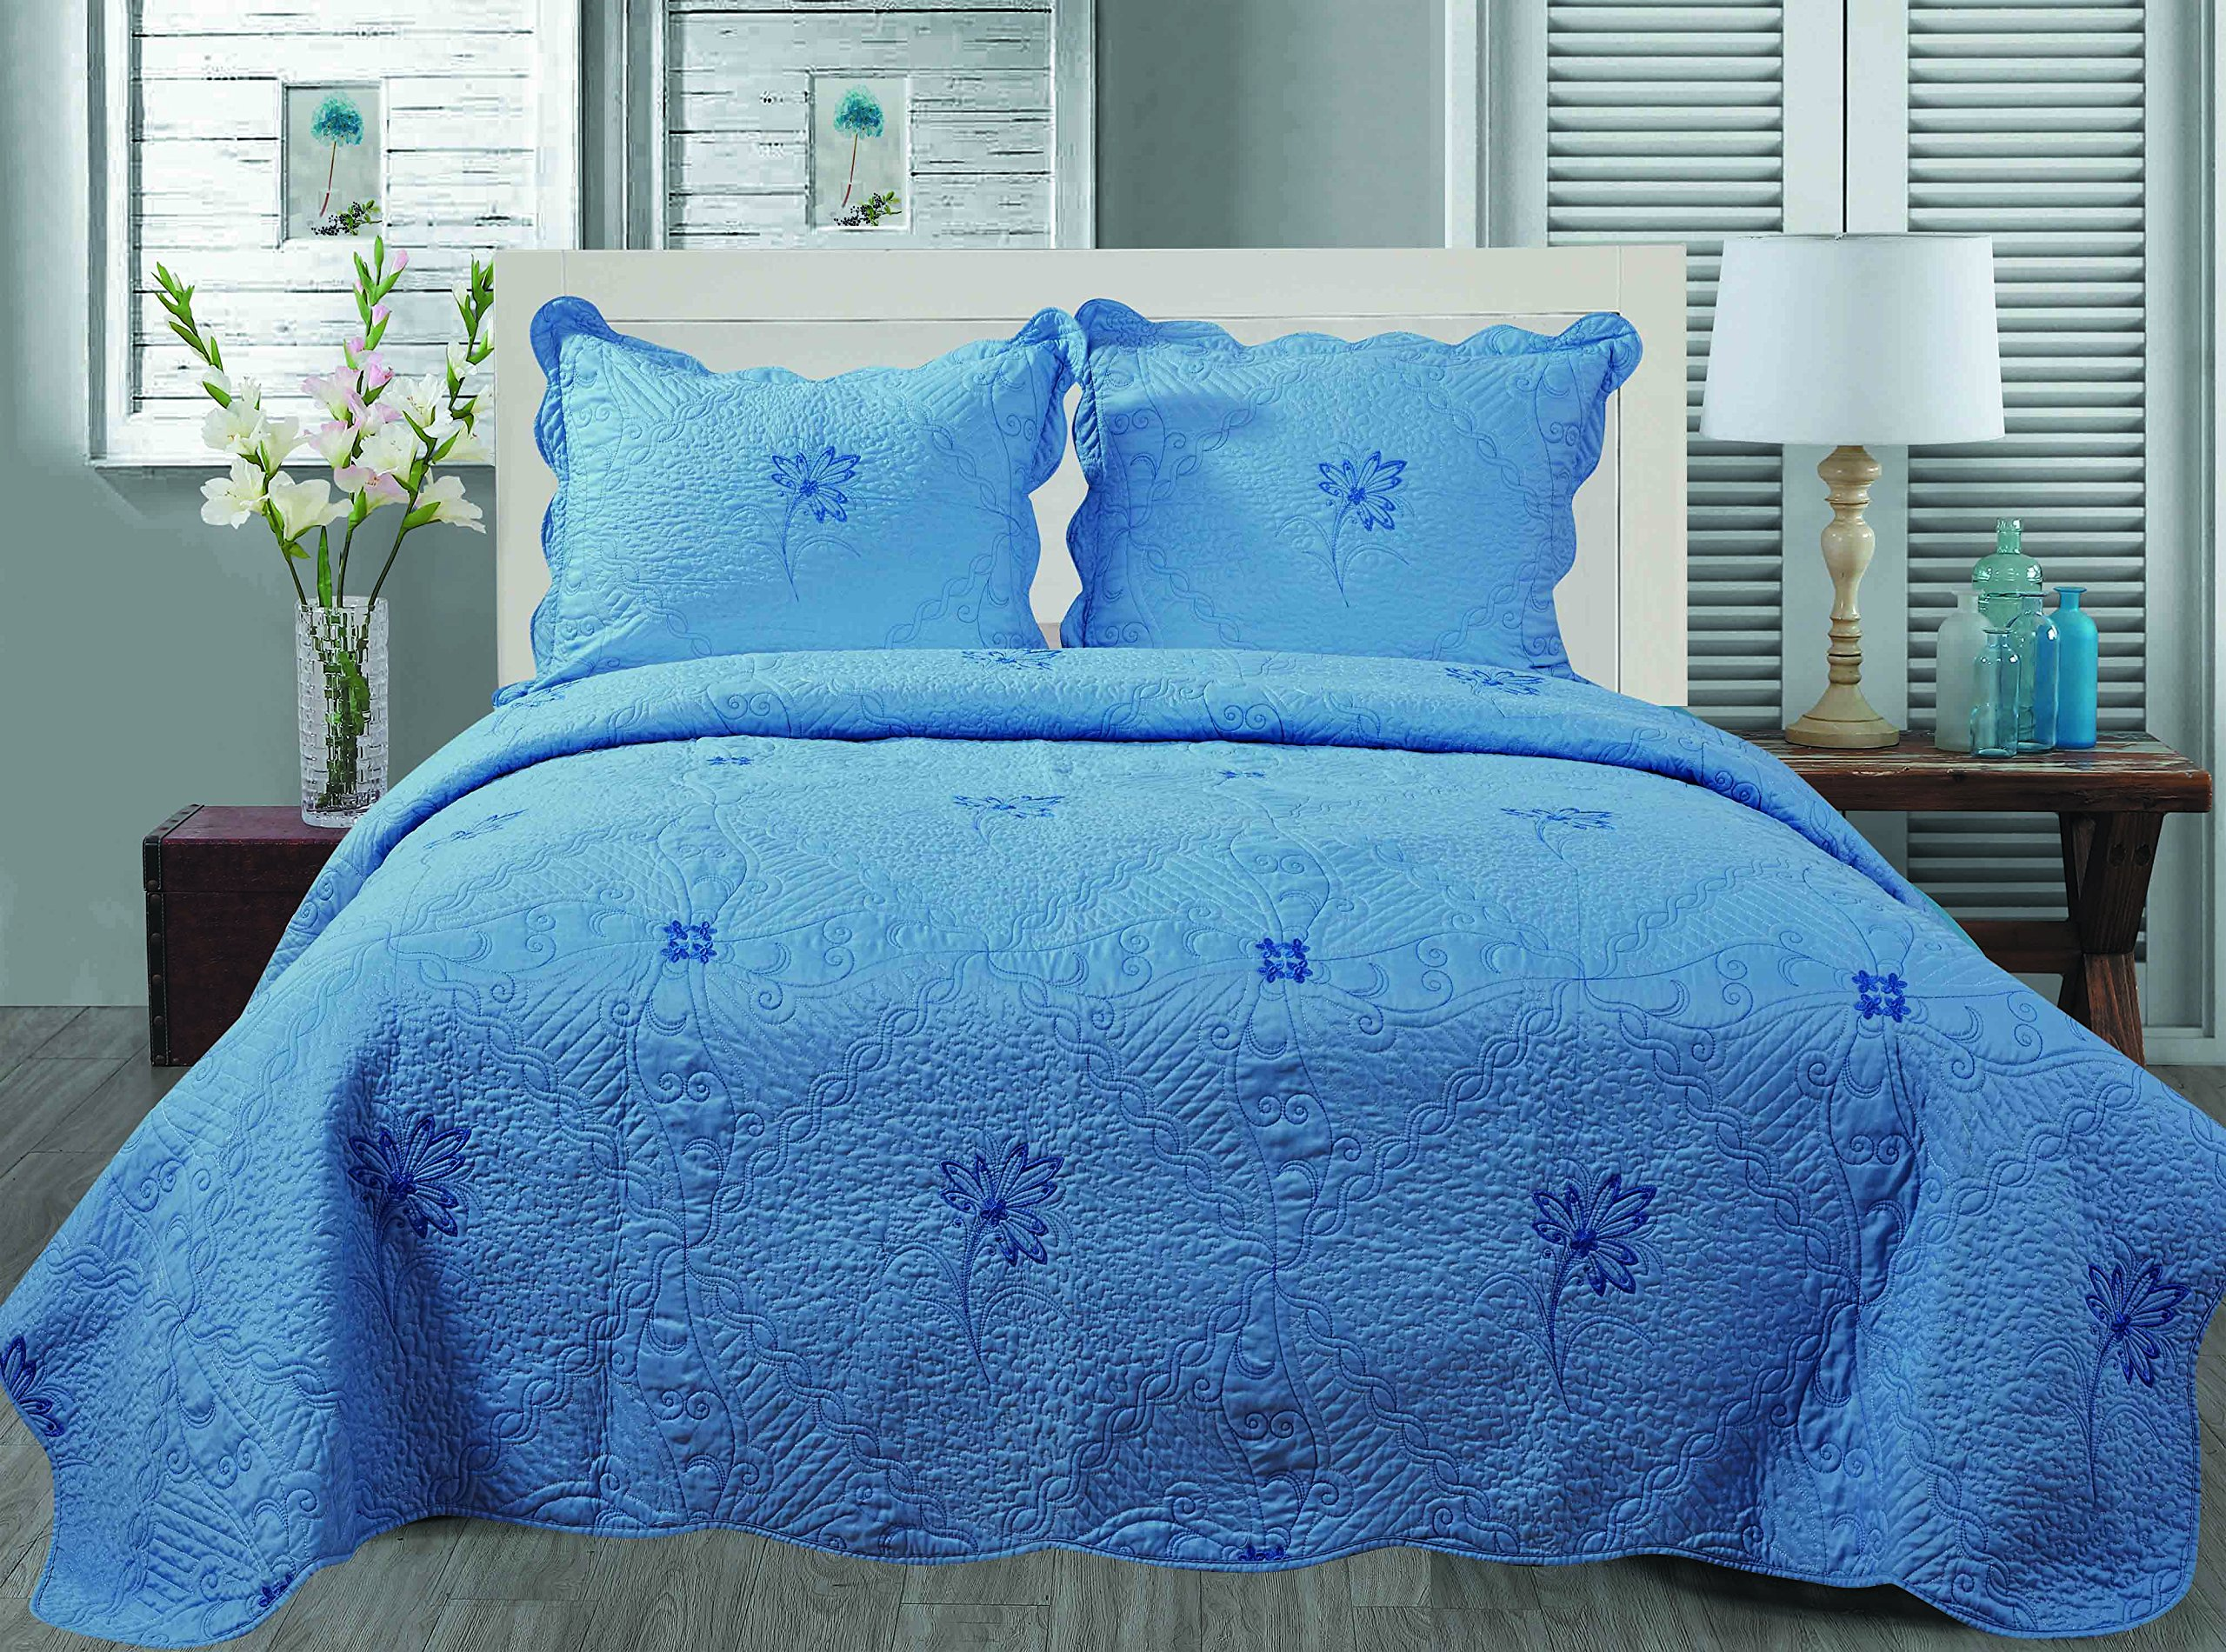 Get Quotations Embroidery All Season Solid Color 3pcs Quilts Set Bedspreads Bed Coverlets Cover Sets King Size 100